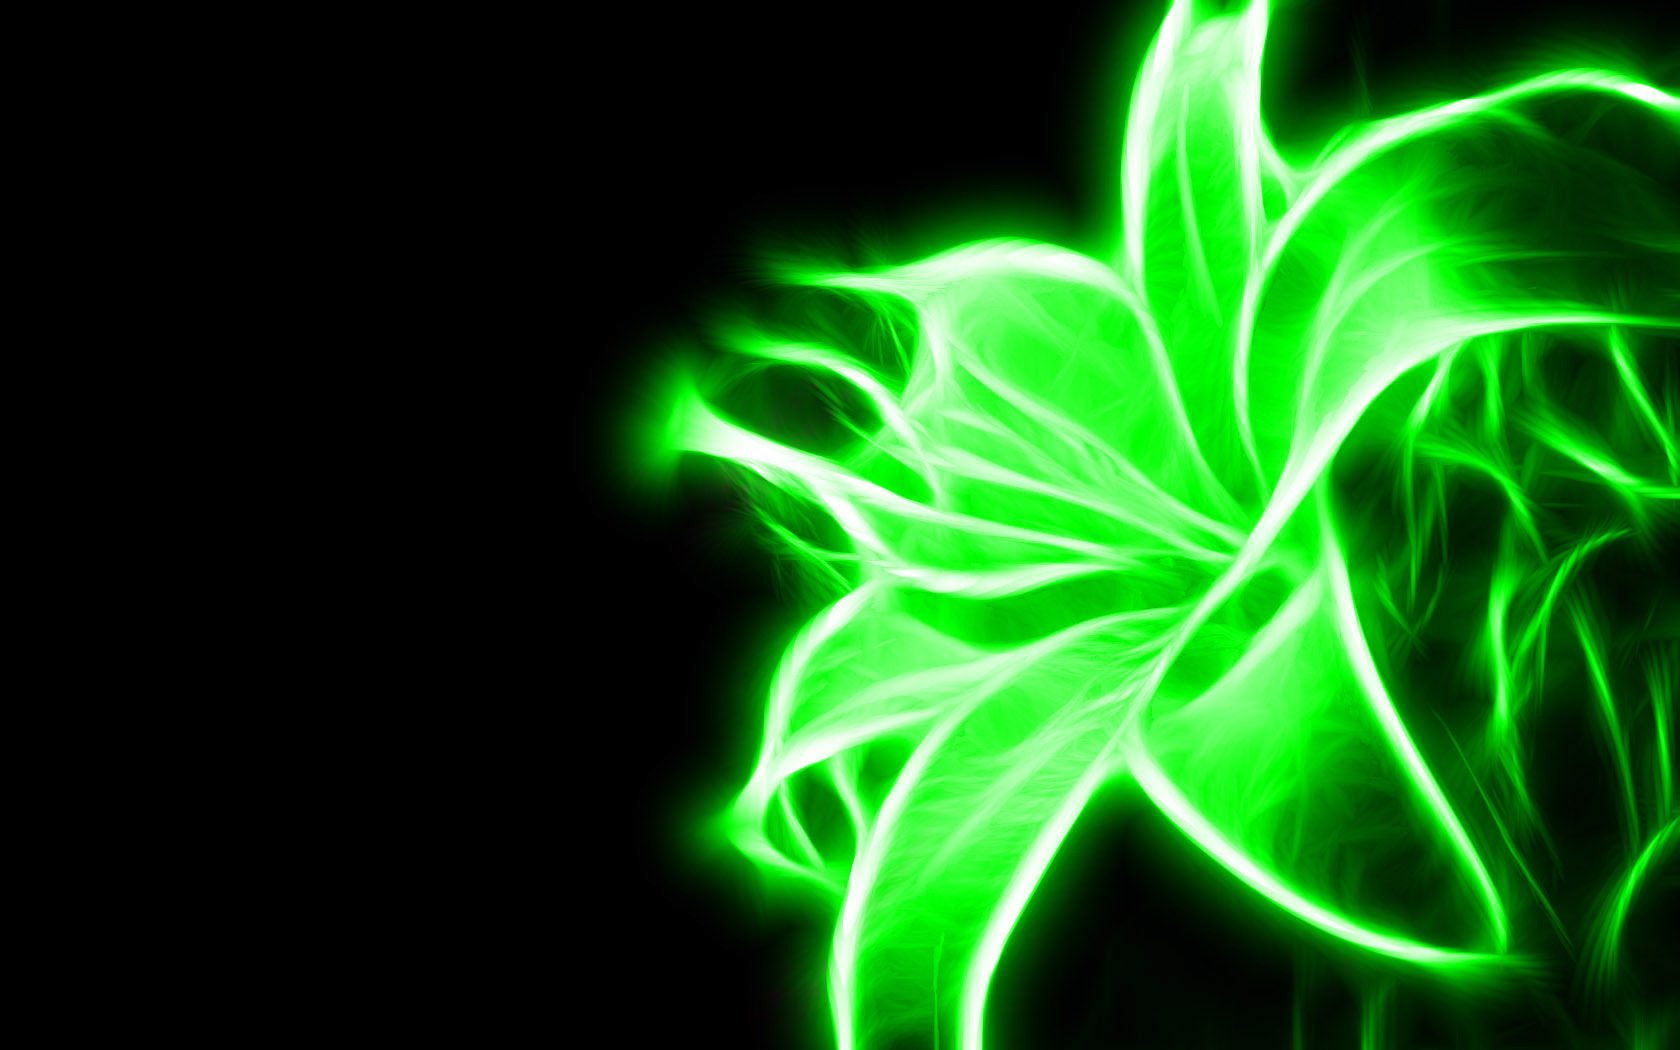 Neon Green Flower   Green Wallpaper 20988898 1680x1050